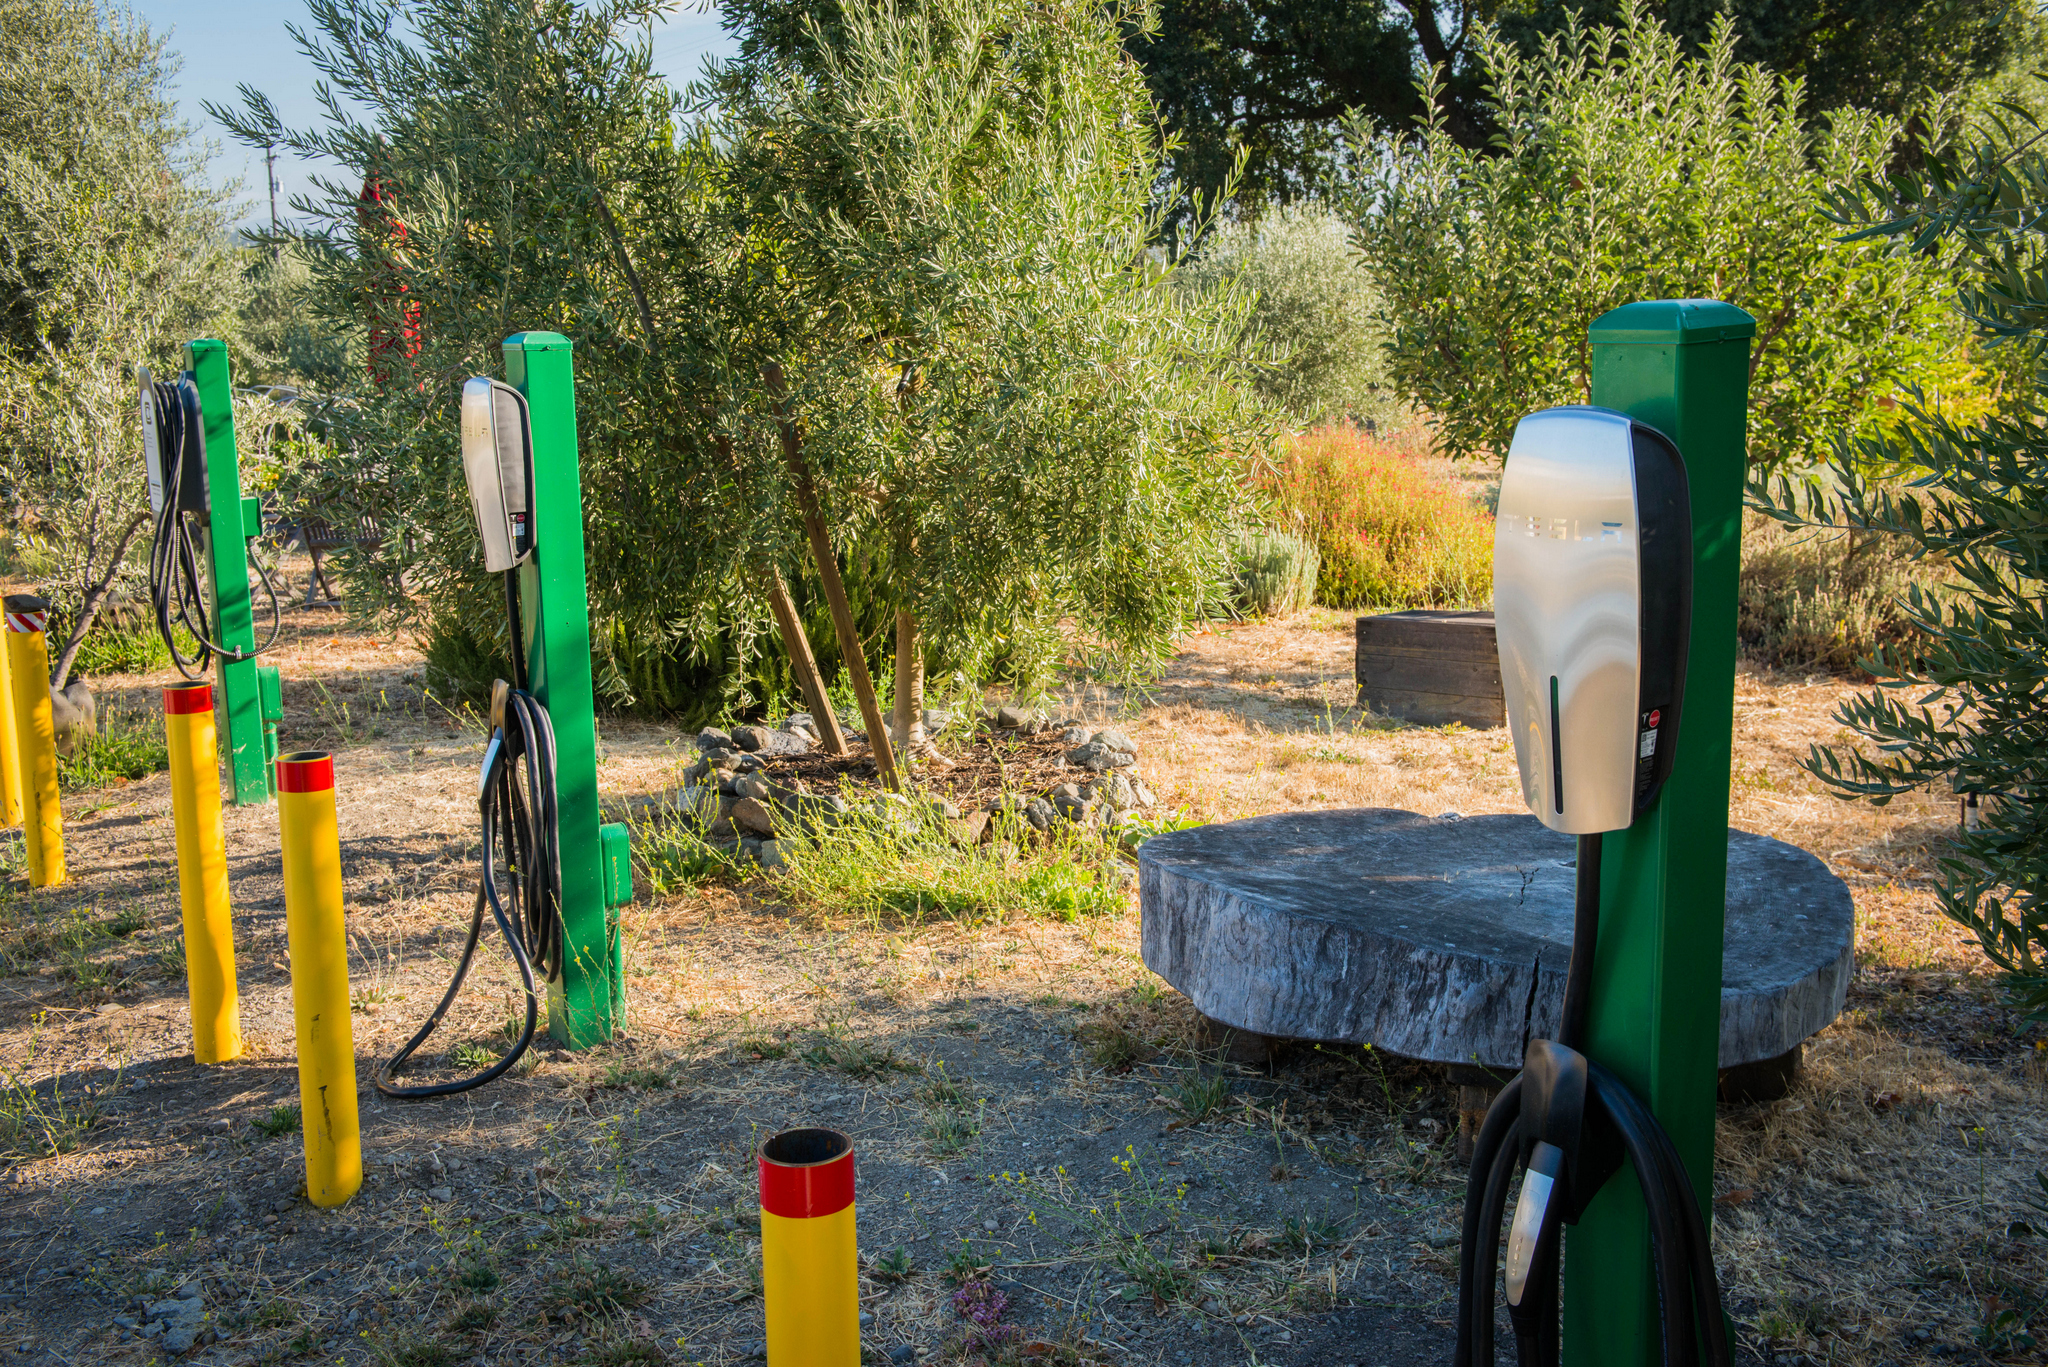 FREE ELECTRIC VEHICLE CHARGERS